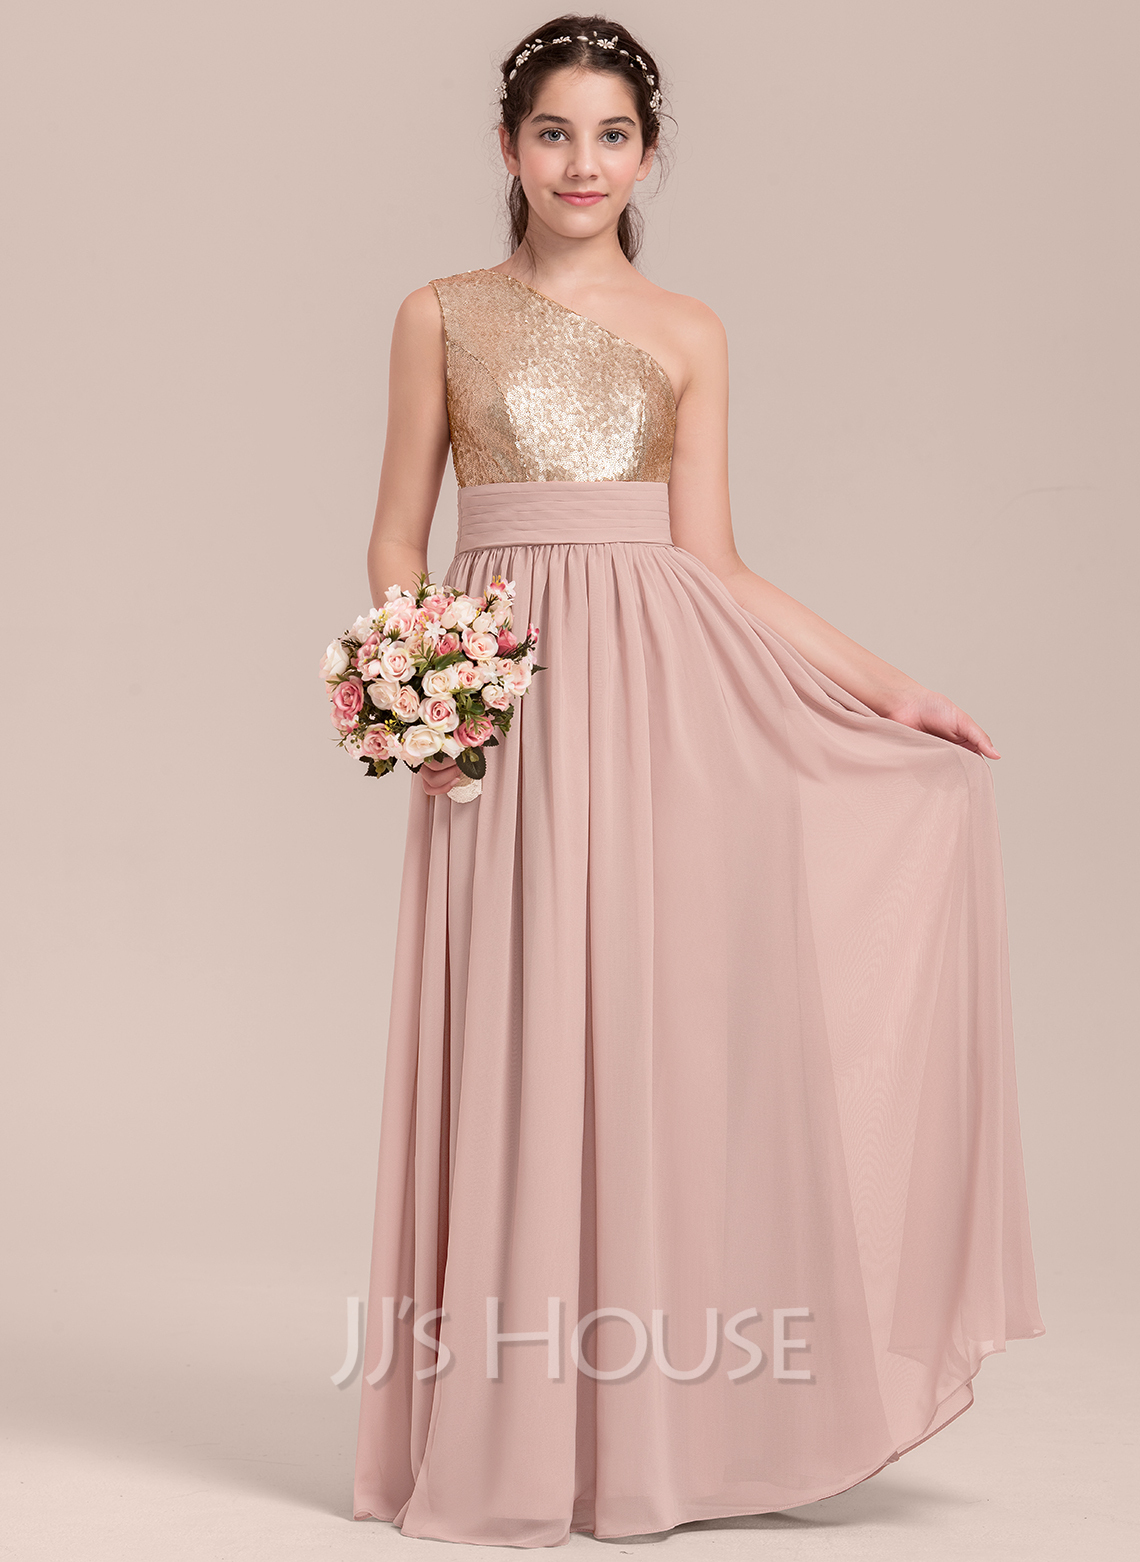 ad274dbdff47 A-Line/Princess One-Shoulder Floor-Length Chiffon Junior Bridesmaid Dress  With